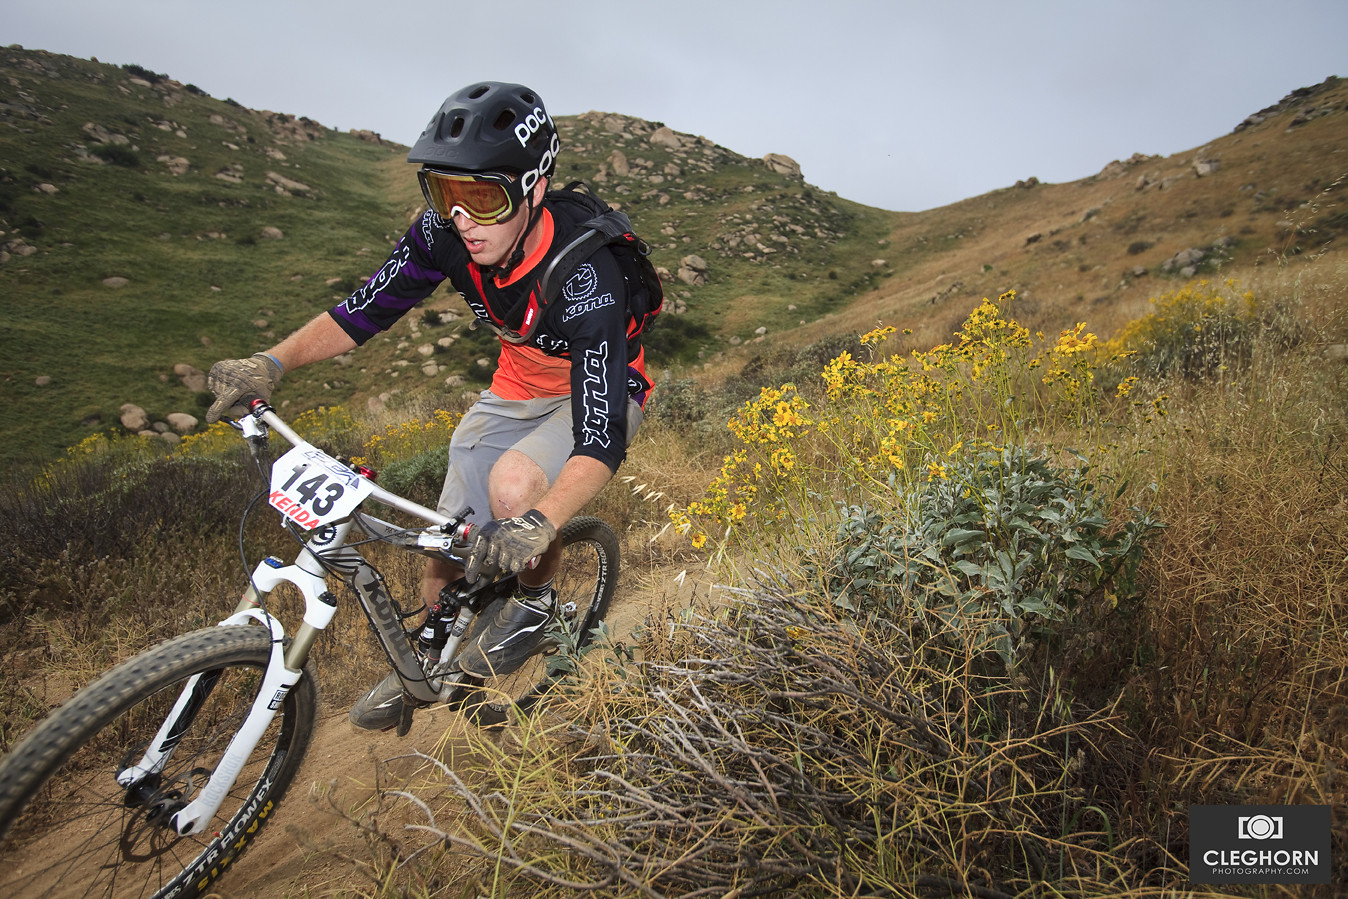 Jordan Steyer - Cleghorn Photography - Mountain Biking Pictures - Vital MTB